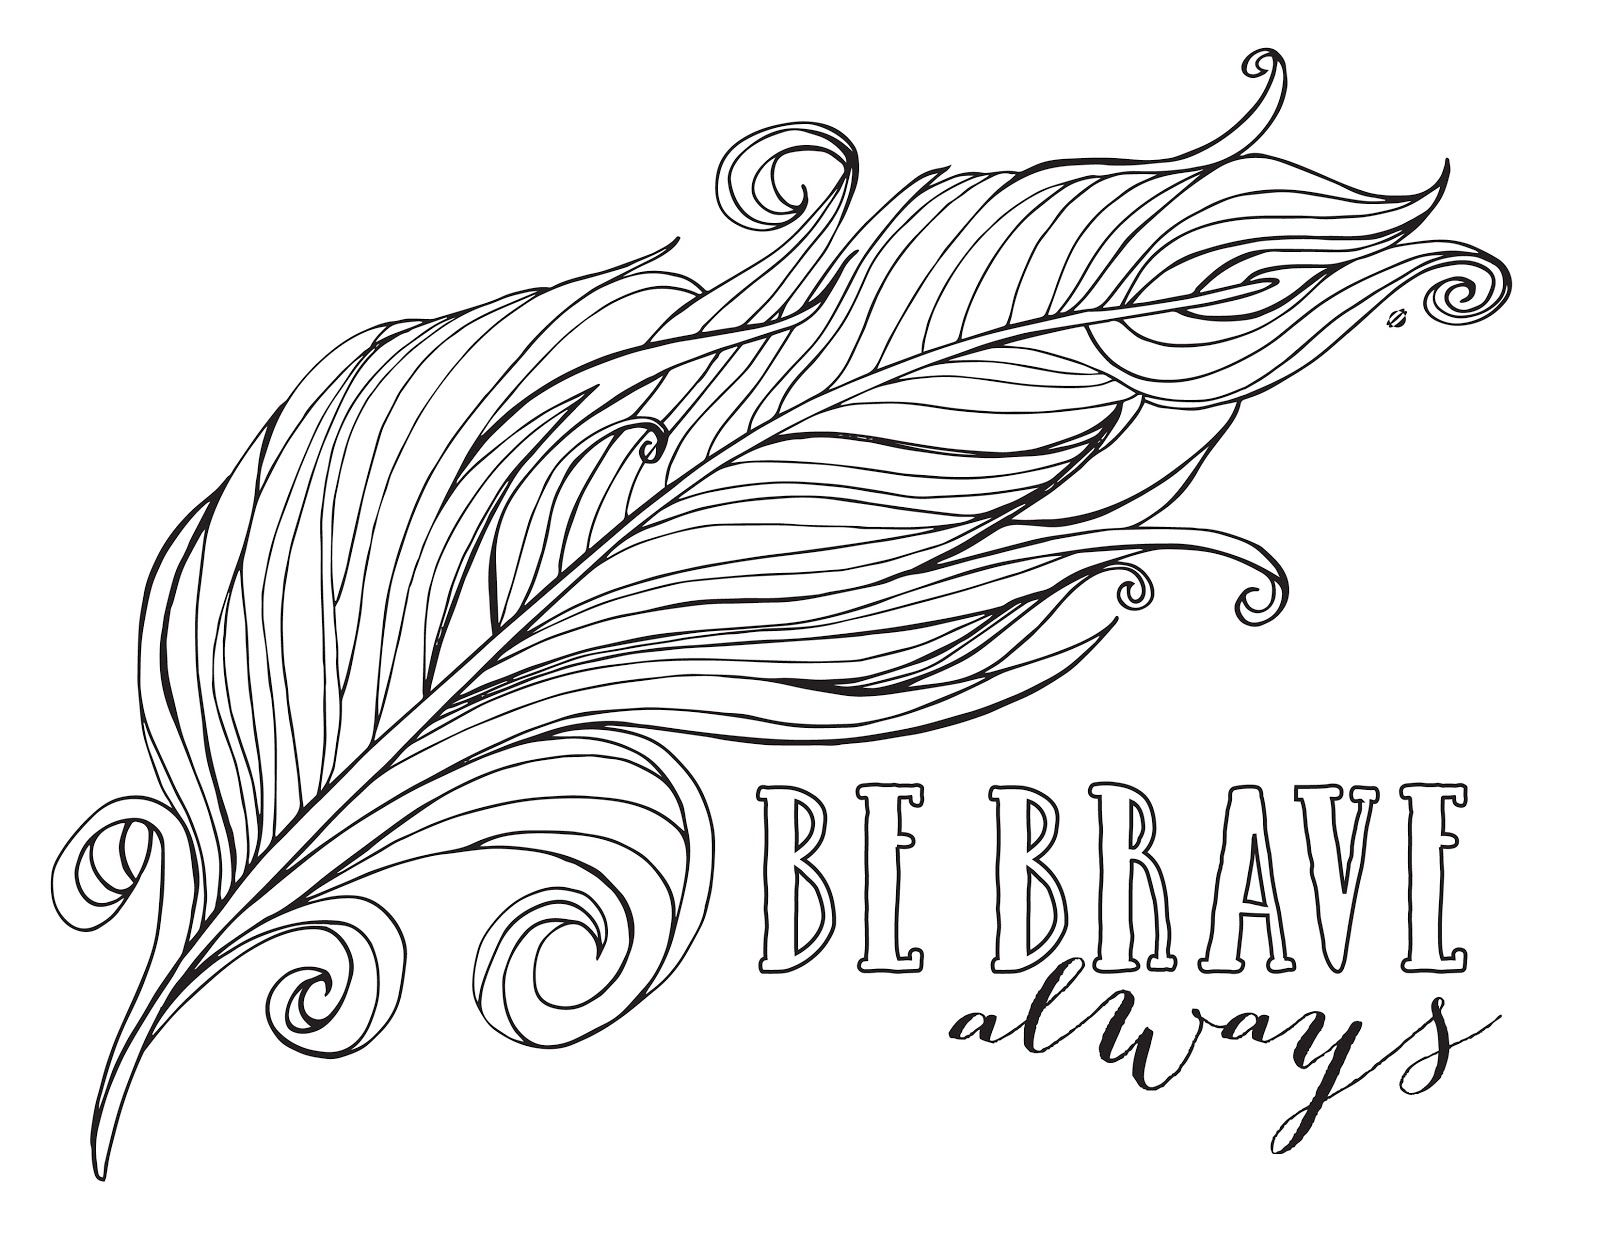 Swear word coloring book sarah bigwood - Always Be Brave Feather Coloring Pages For Kids